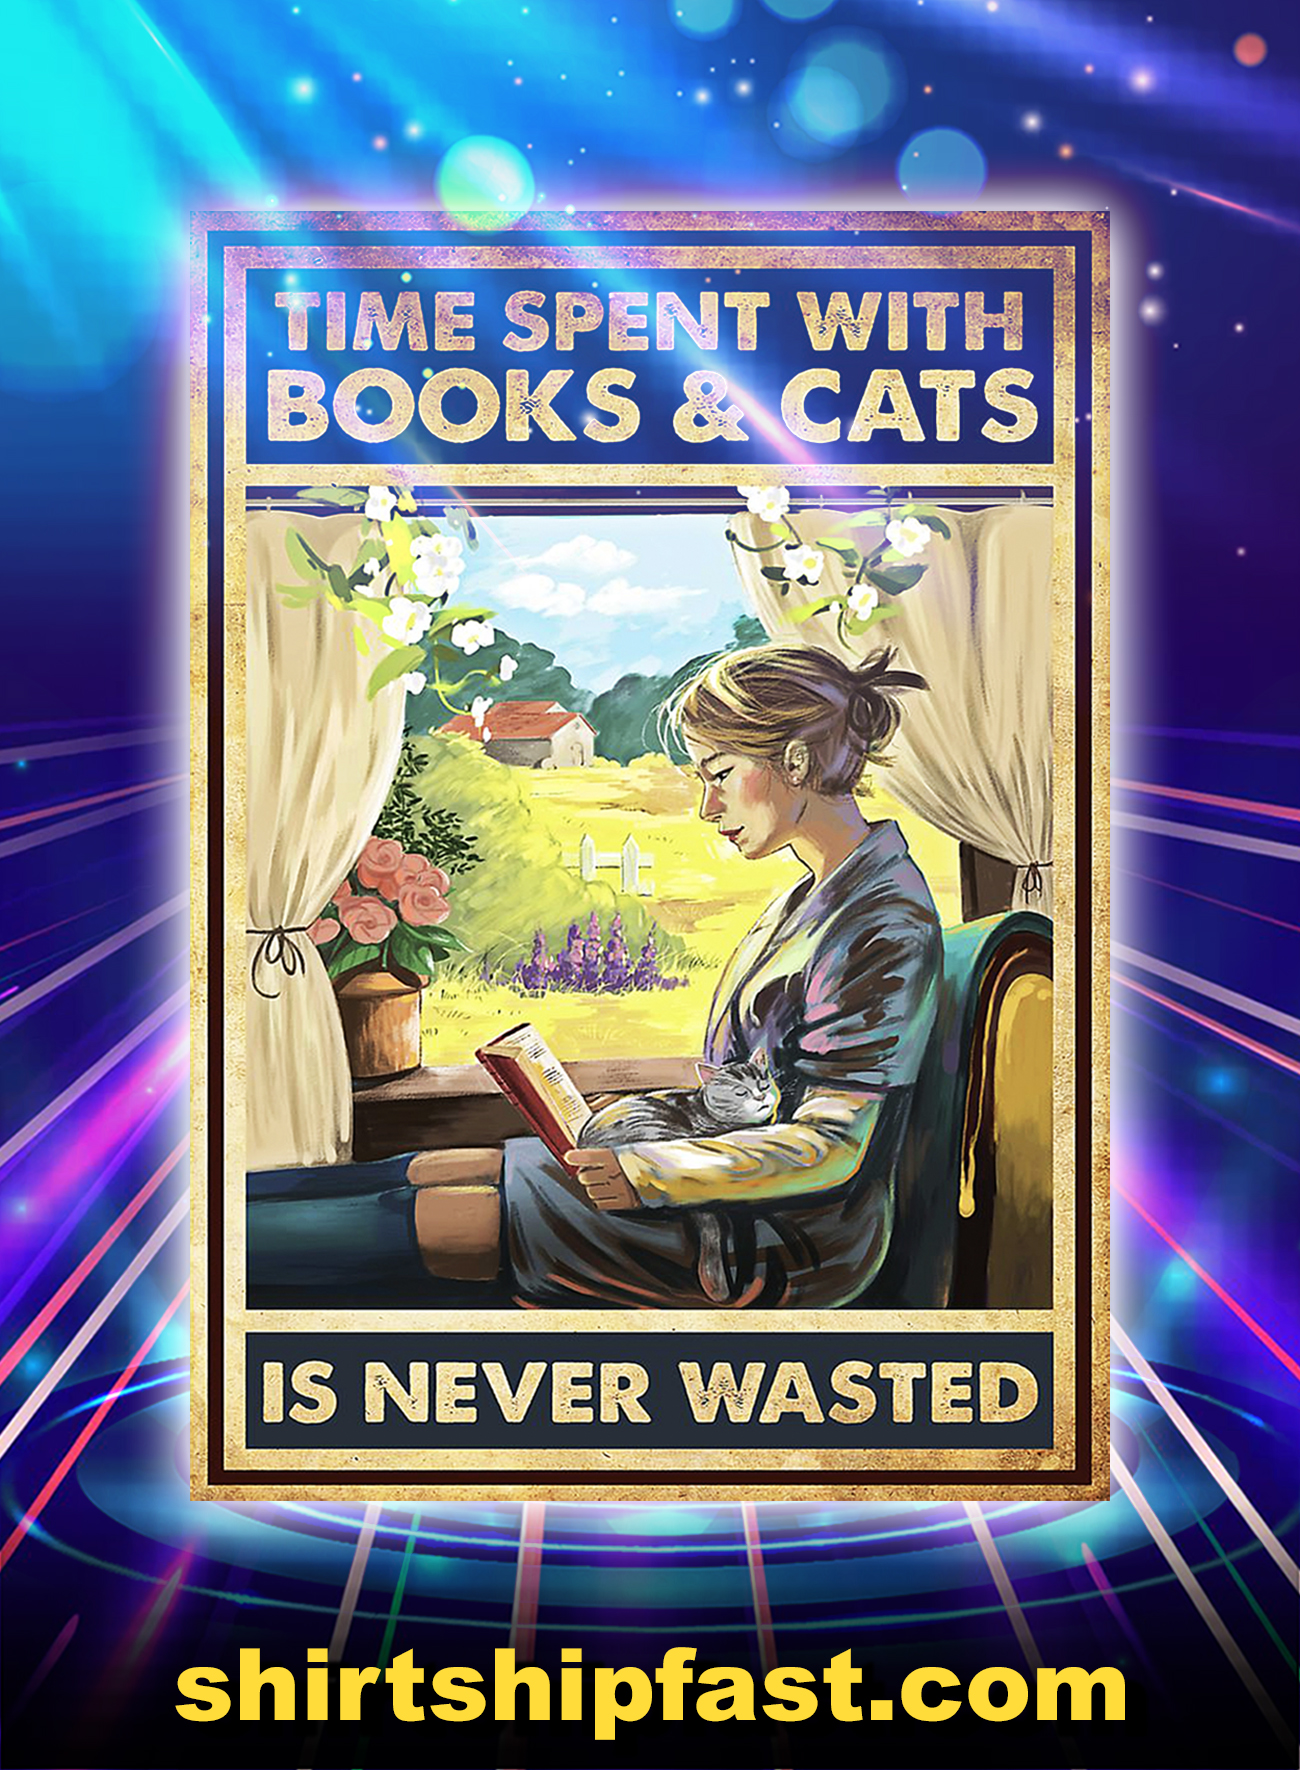 Time spent with books and cats is never wasted poster - A1